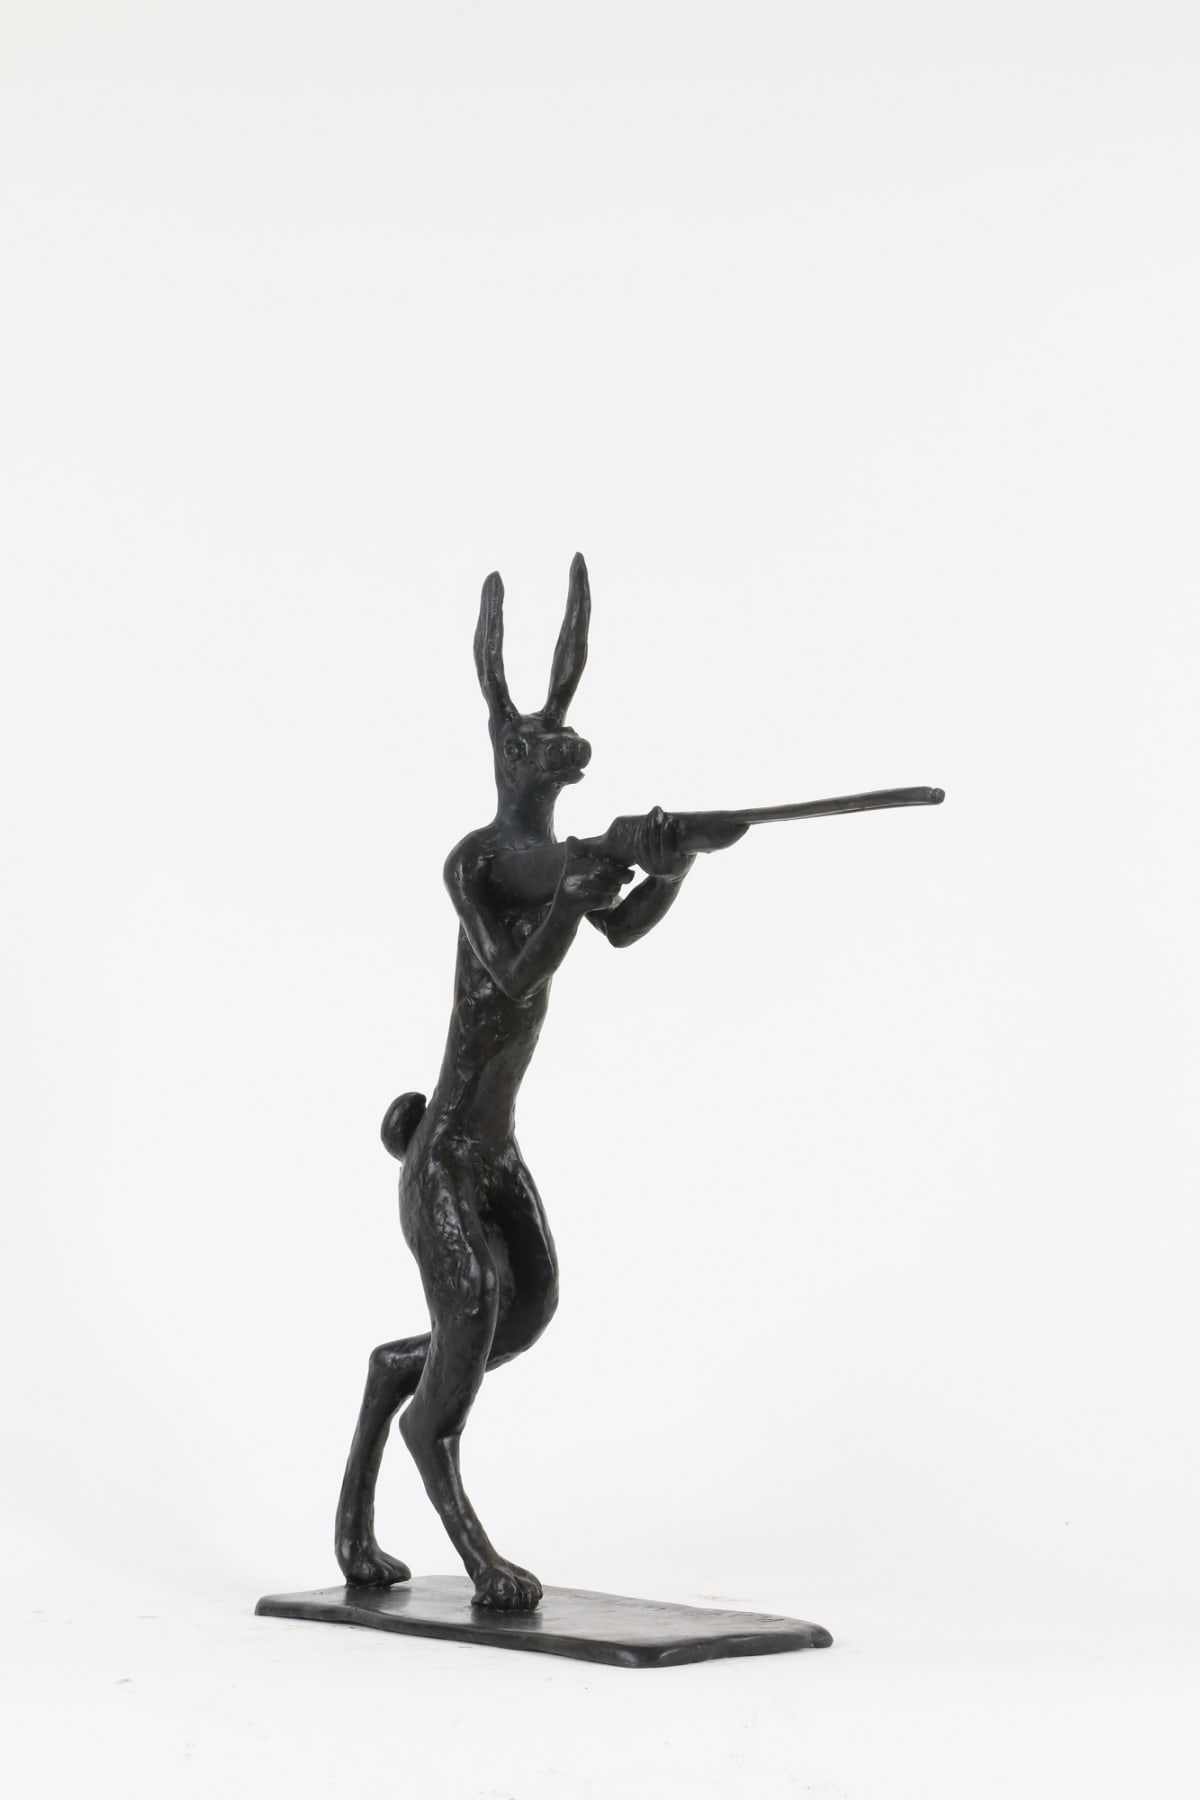 Paul DIBBLE, Rabbit Fights Back [Larger Model], 2016